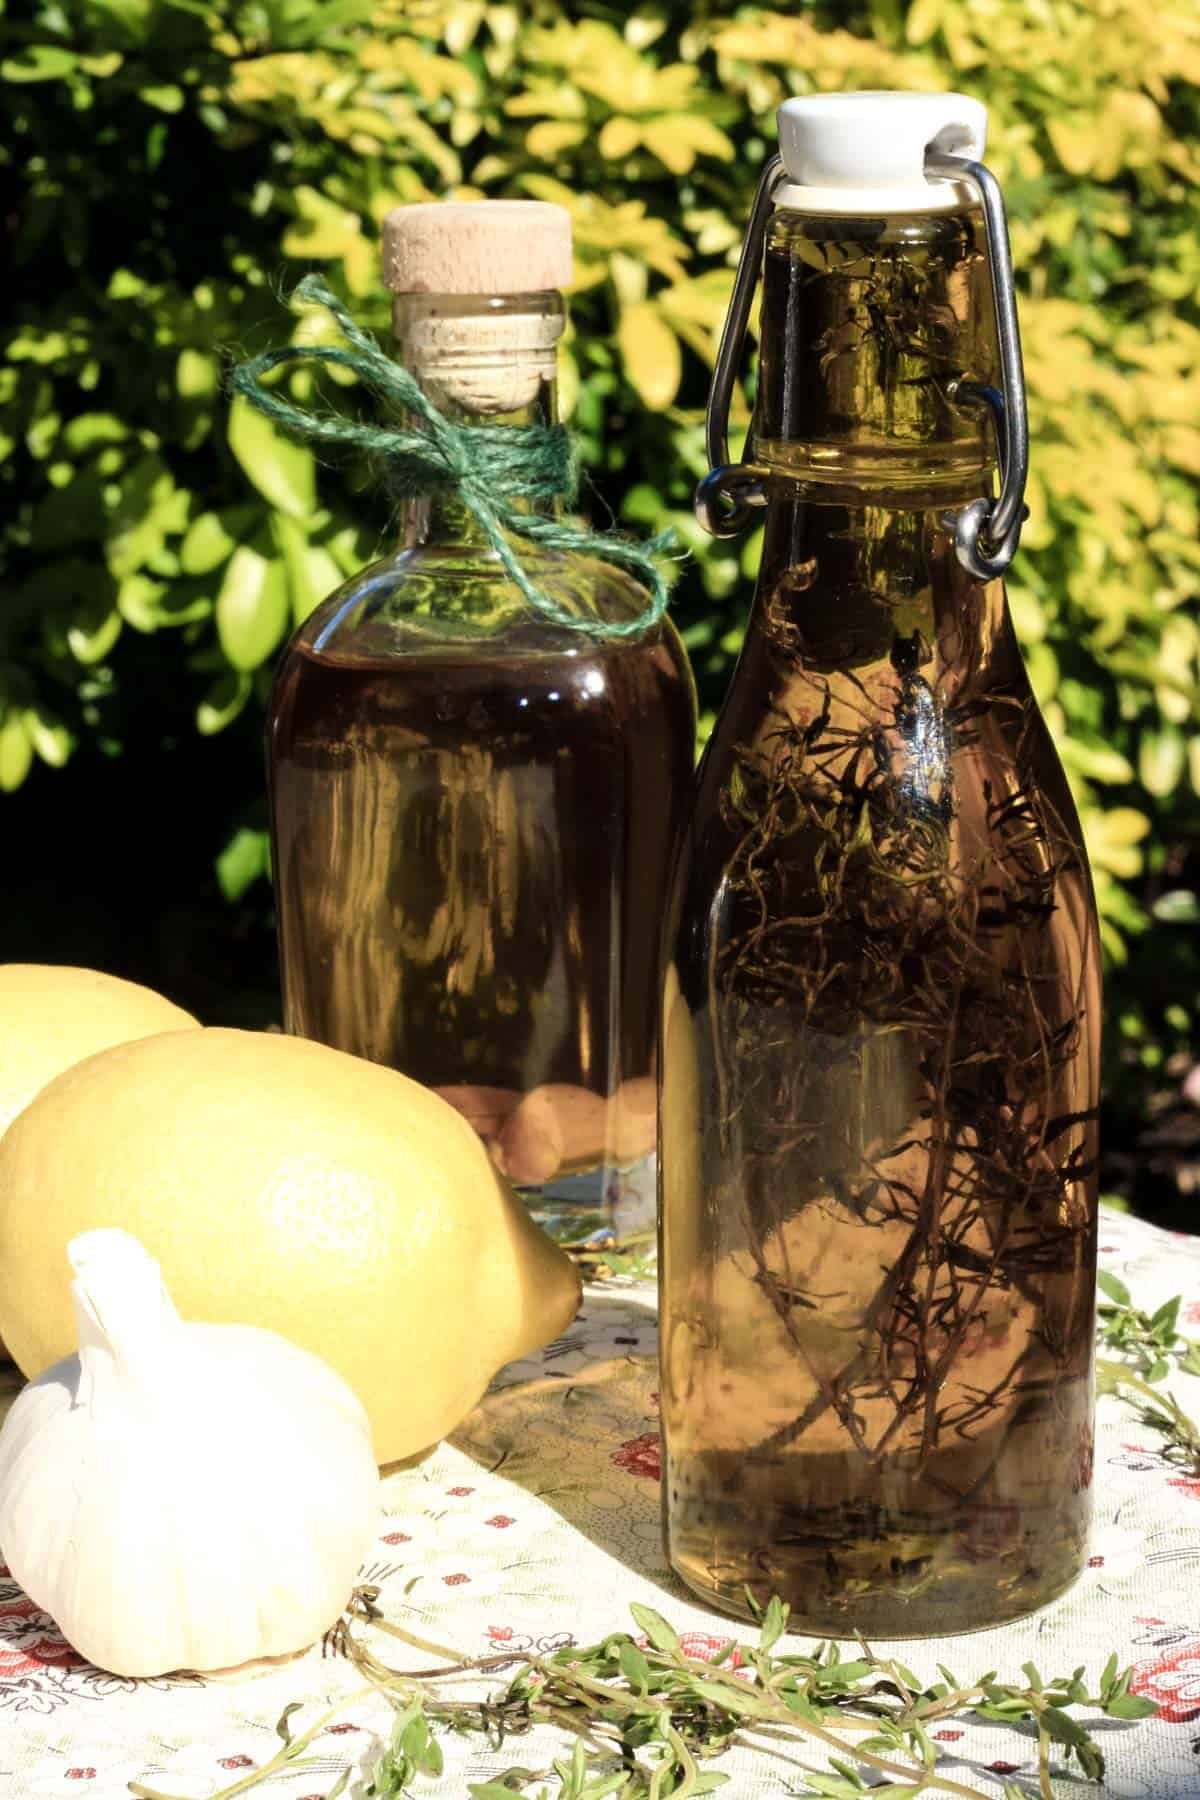 Lemon Garlic and Thyme Olive Oil